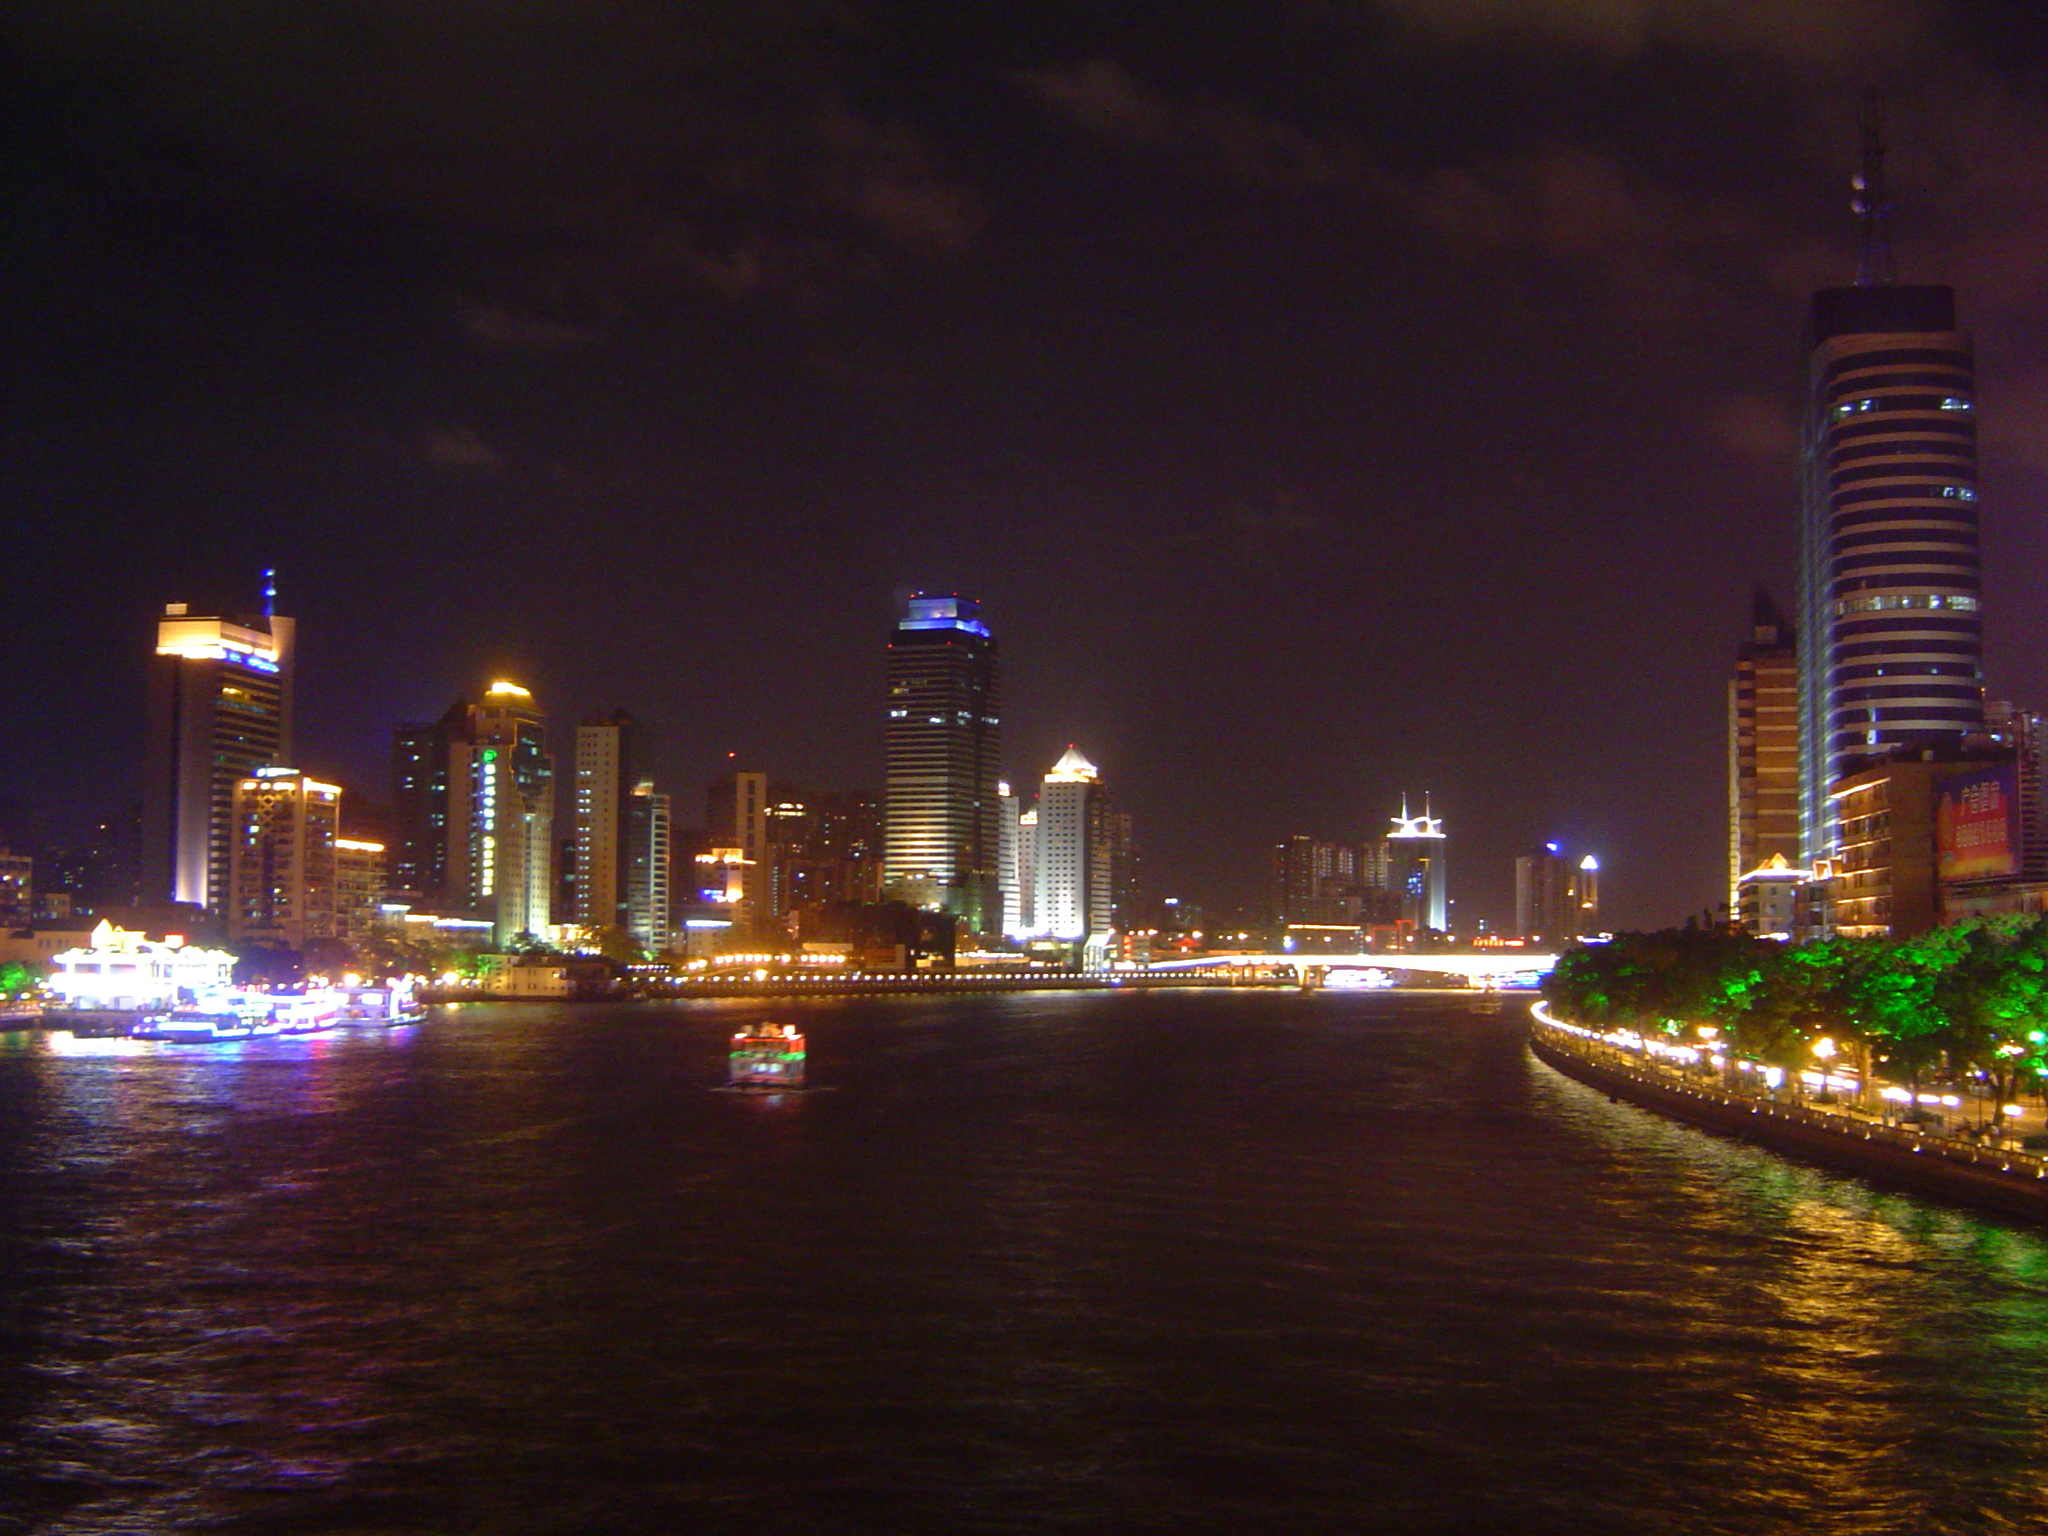 http://upload.wikimedia.org/wikipedia/commons/d/da/Pearl_River_in_Guangzhou.JPG